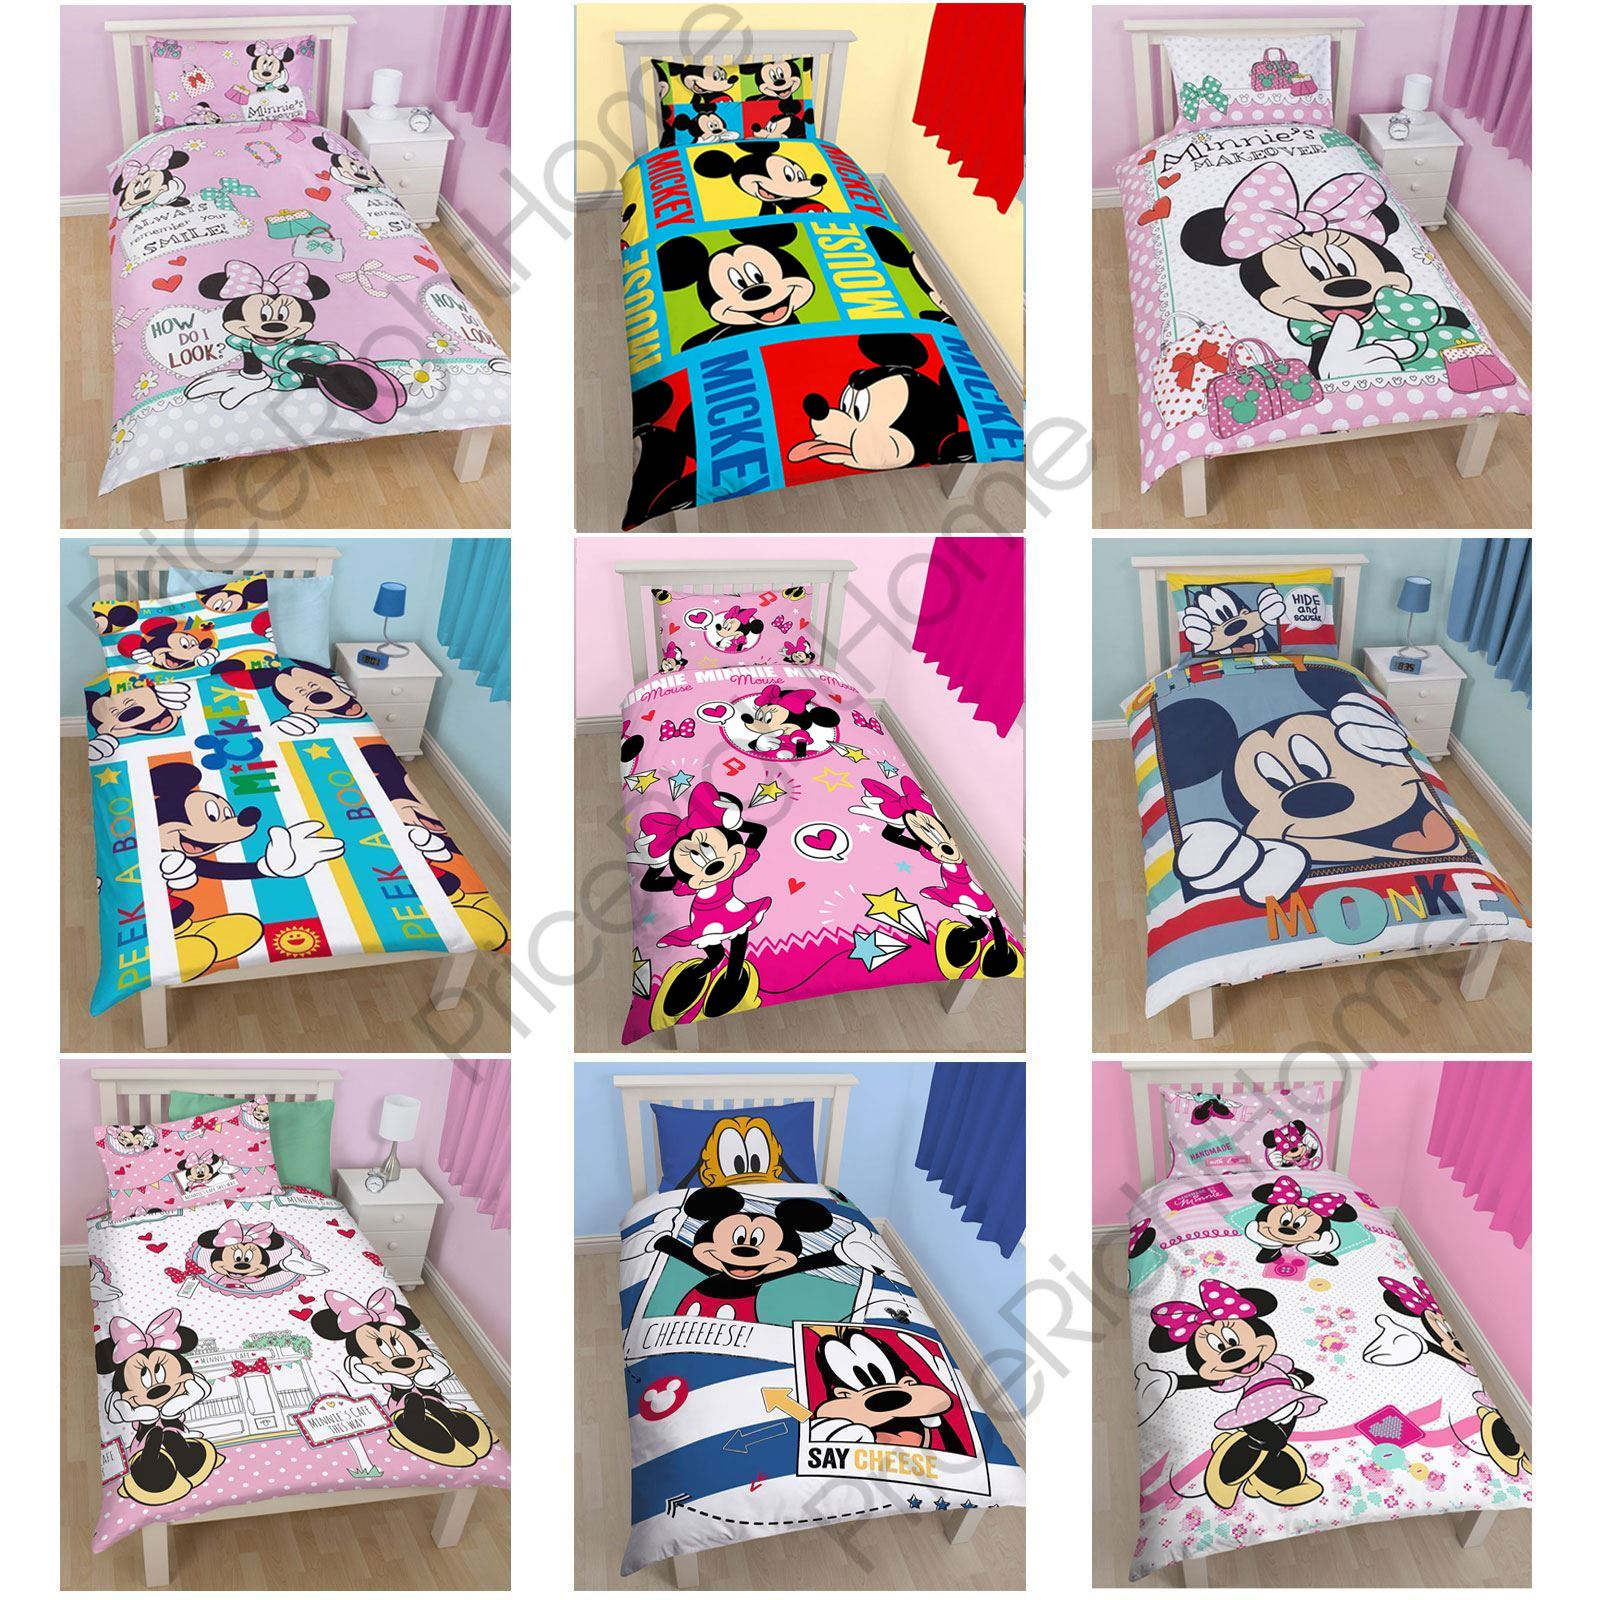 DISNEY MICKEY OR MINNIE MOUSE SINGLE JUNIOR DUVET COVER SETS KIDS - Disney bedroom furniture uk